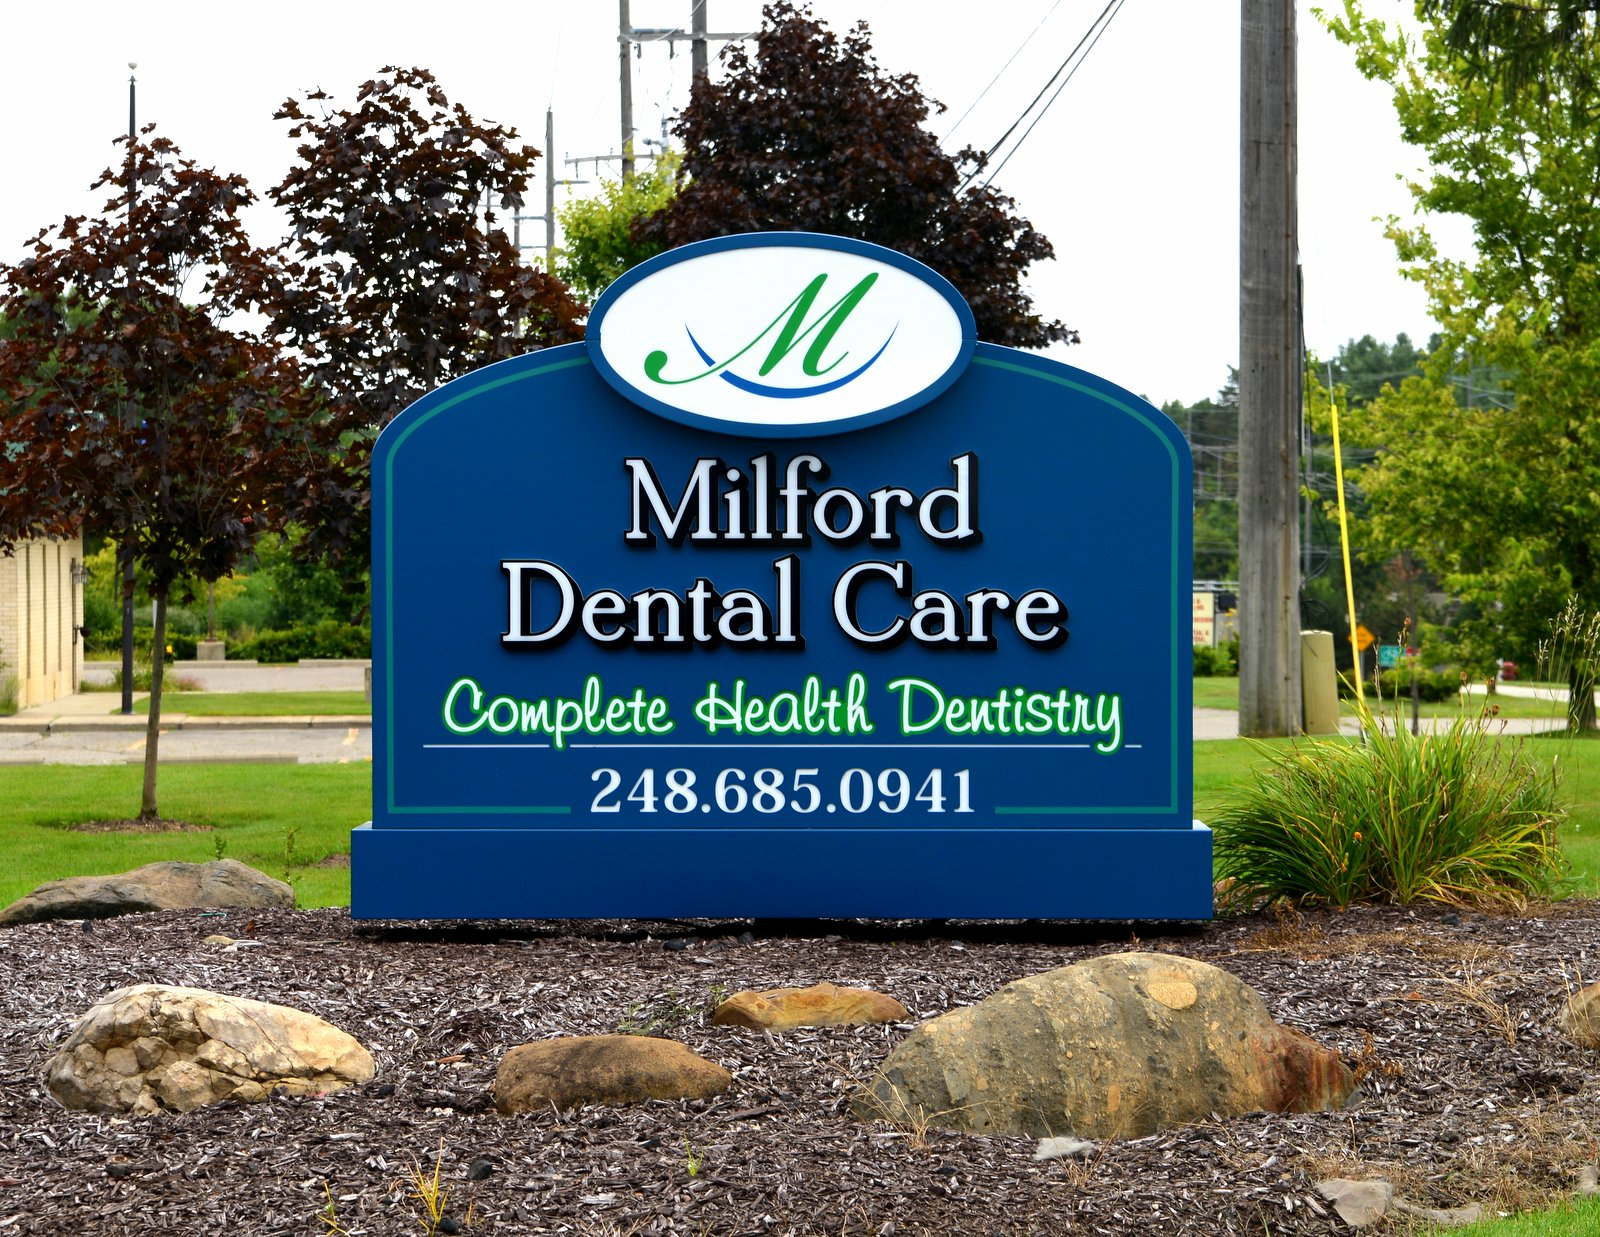 Milford Dental Care Ground Sign